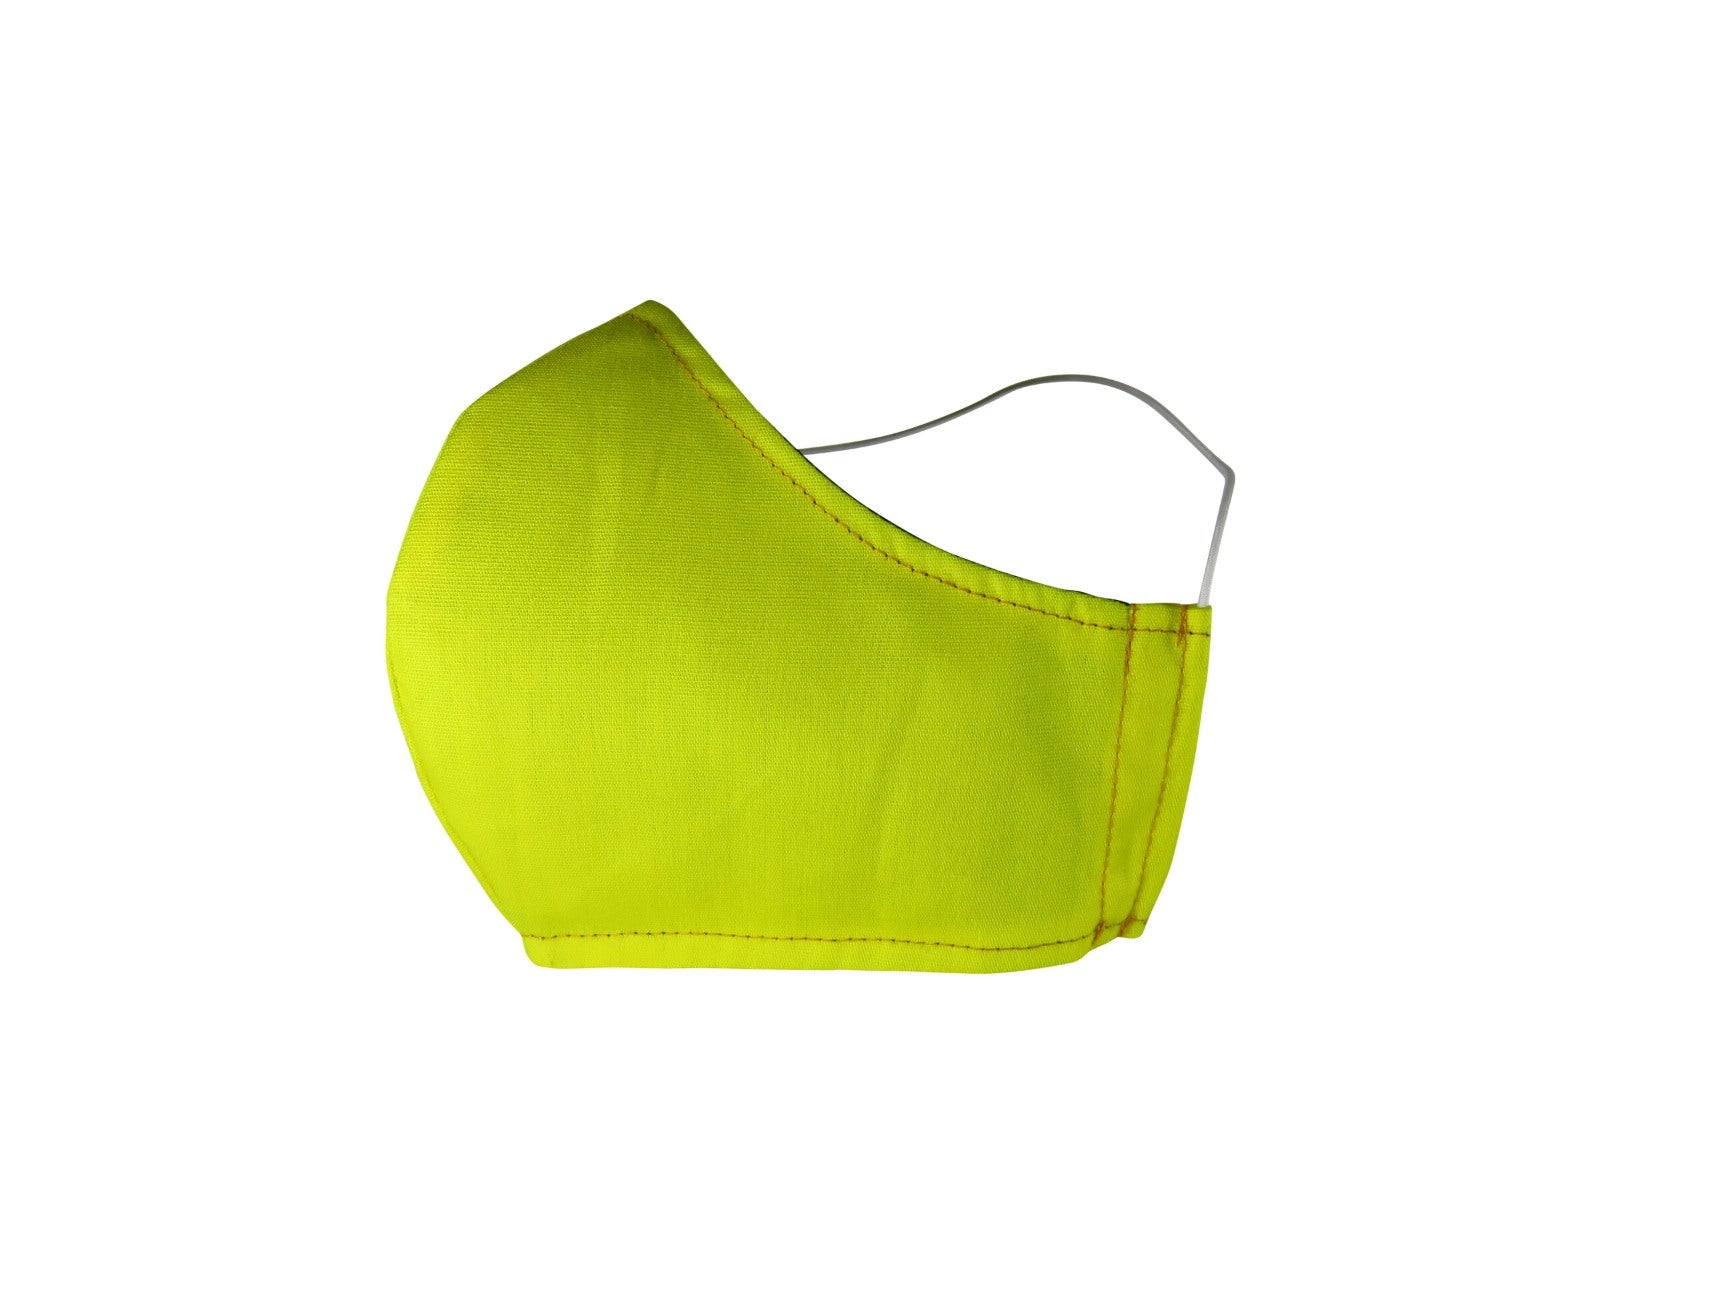 Plain Reusable Fabric Face Mask - Lemon